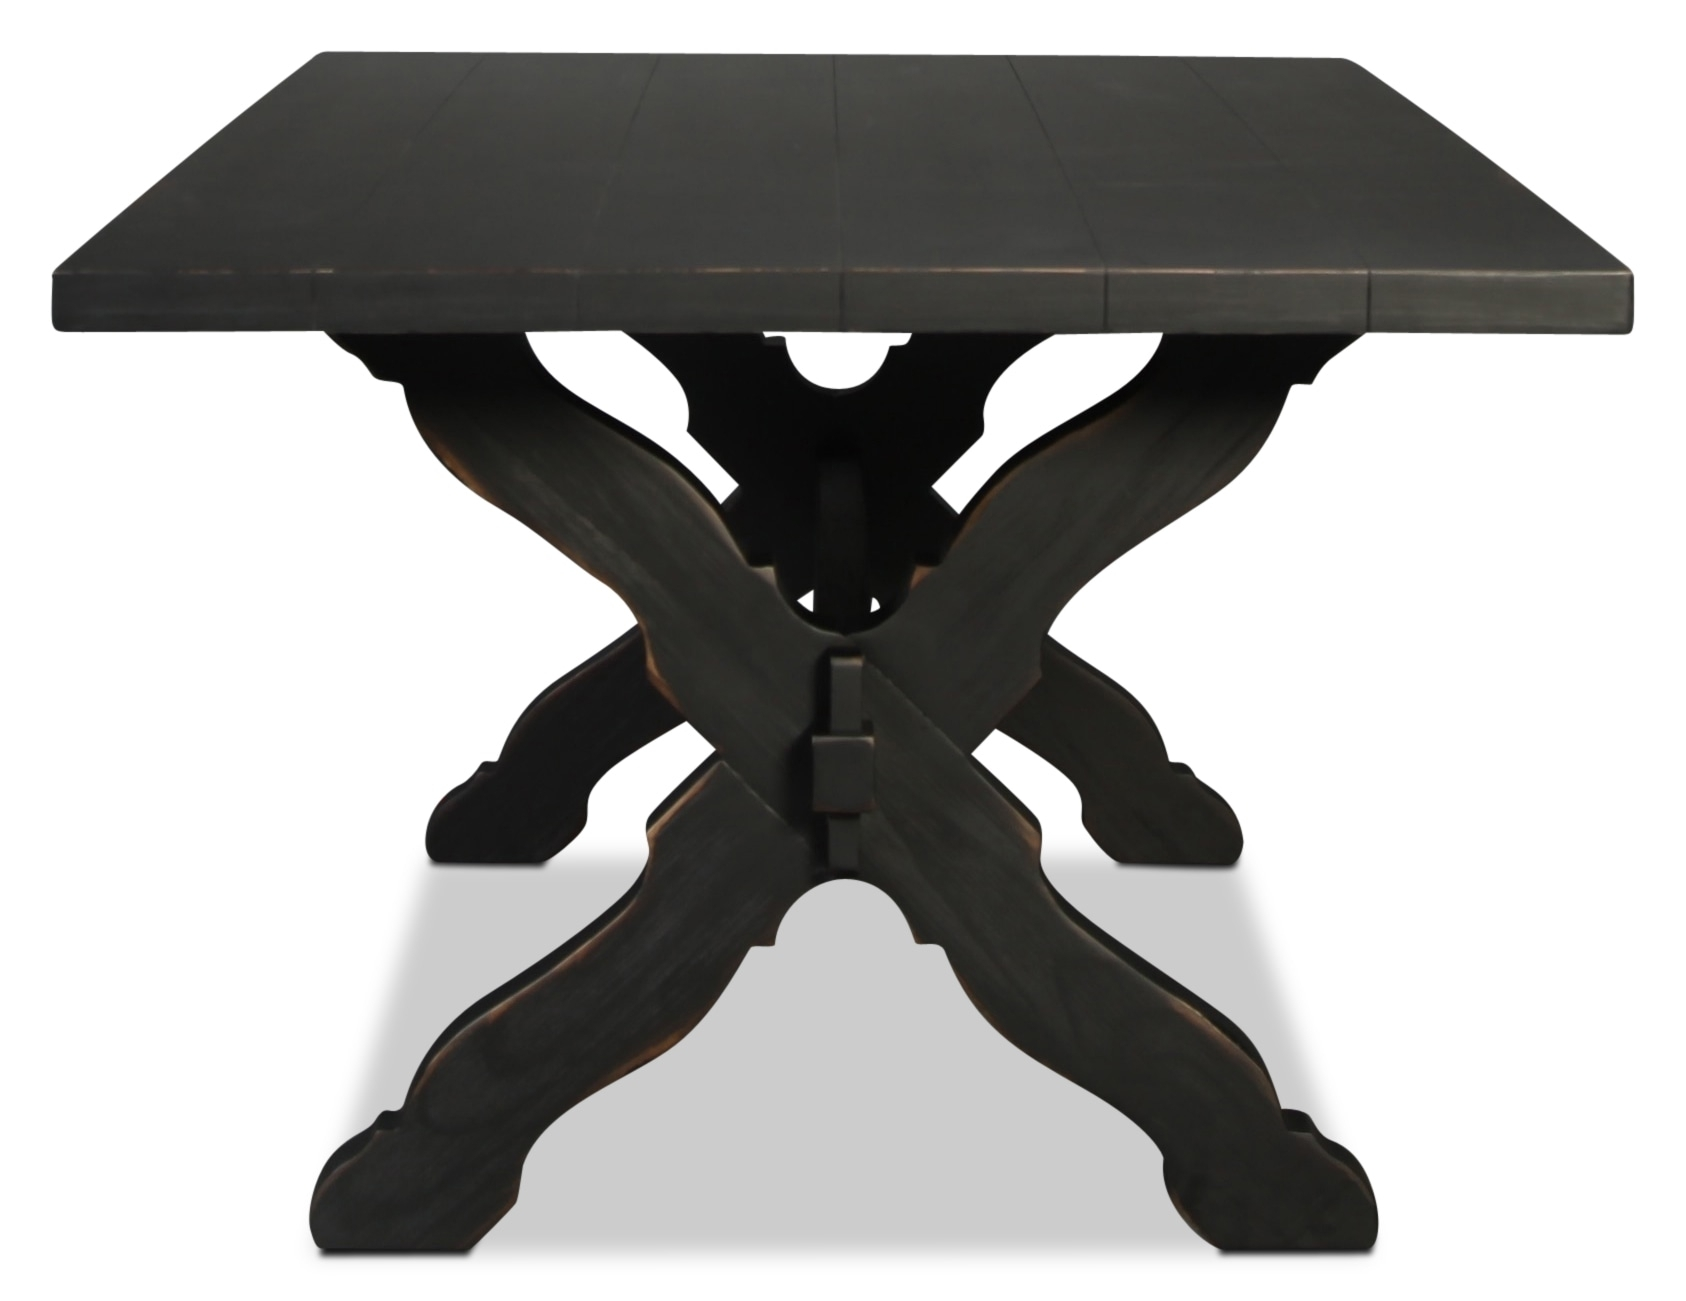 Magnolia Home Primitive Sawbuck Dining Table | Intended For Best And Newest Magnolia Home Sawbuck Dining Tables (Image 12 of 20)